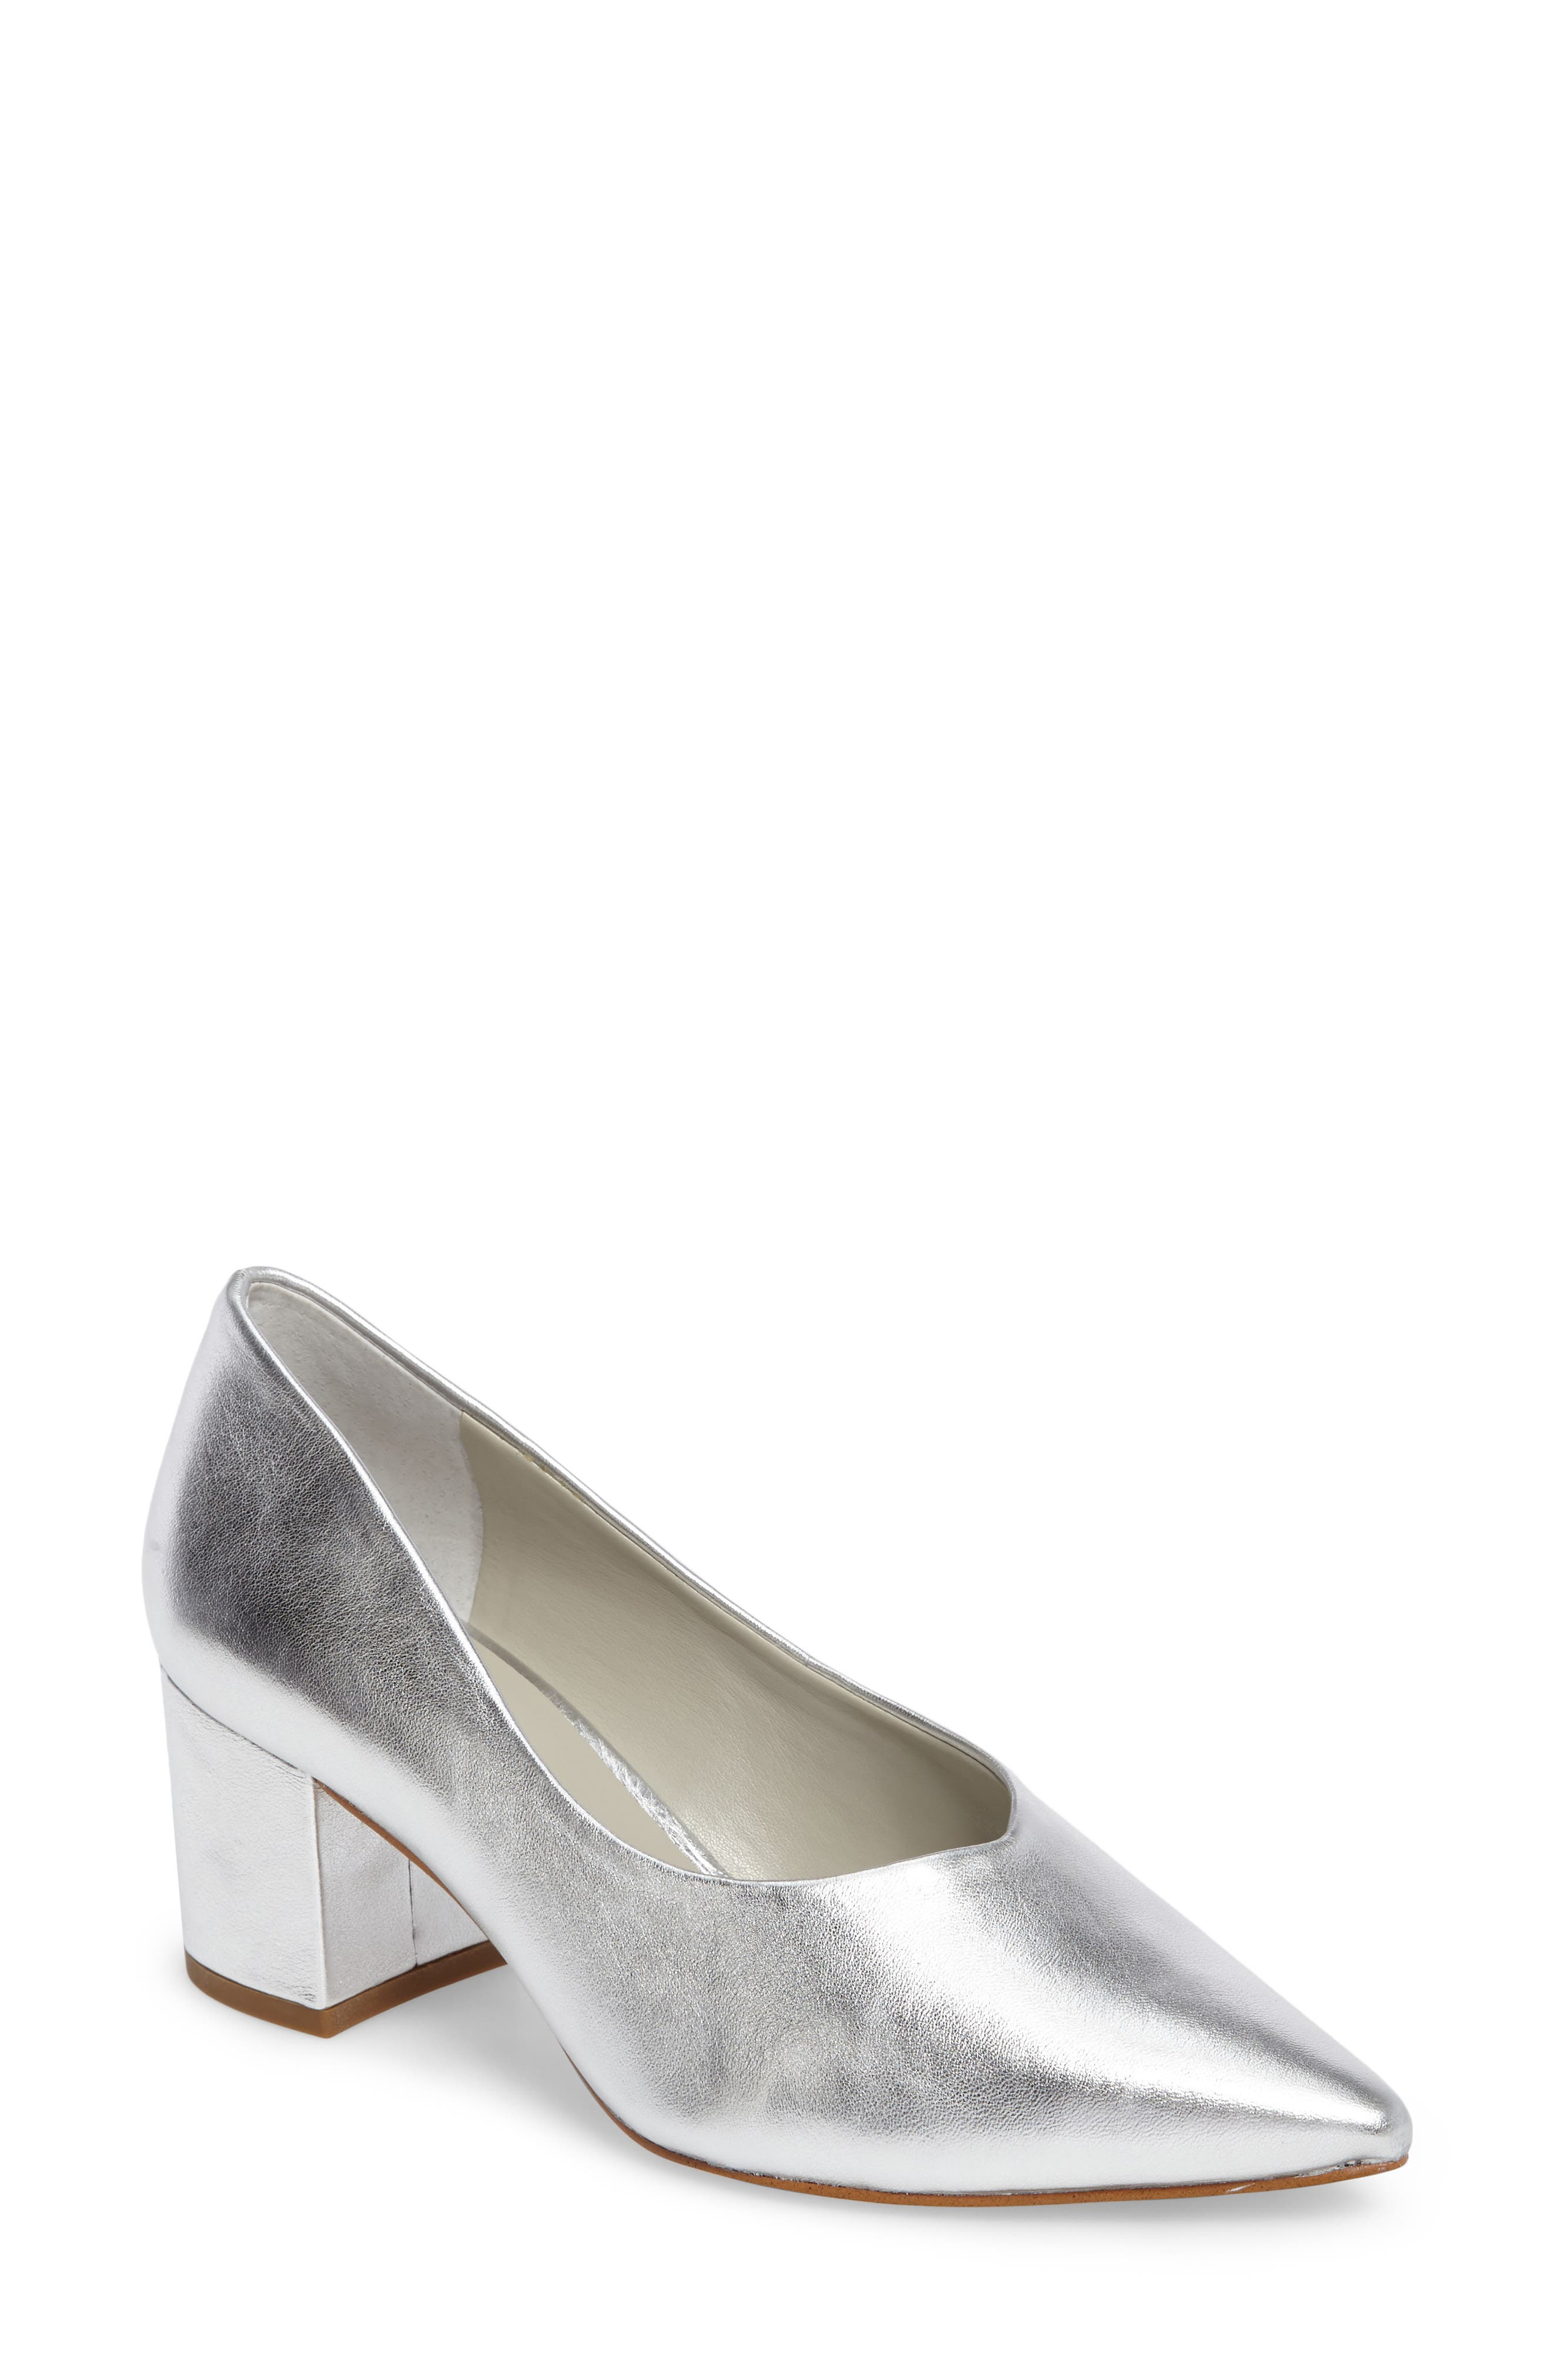 Jact Pointy Toe Pump,                             Main thumbnail 1, color,                             Bright Silver Leather